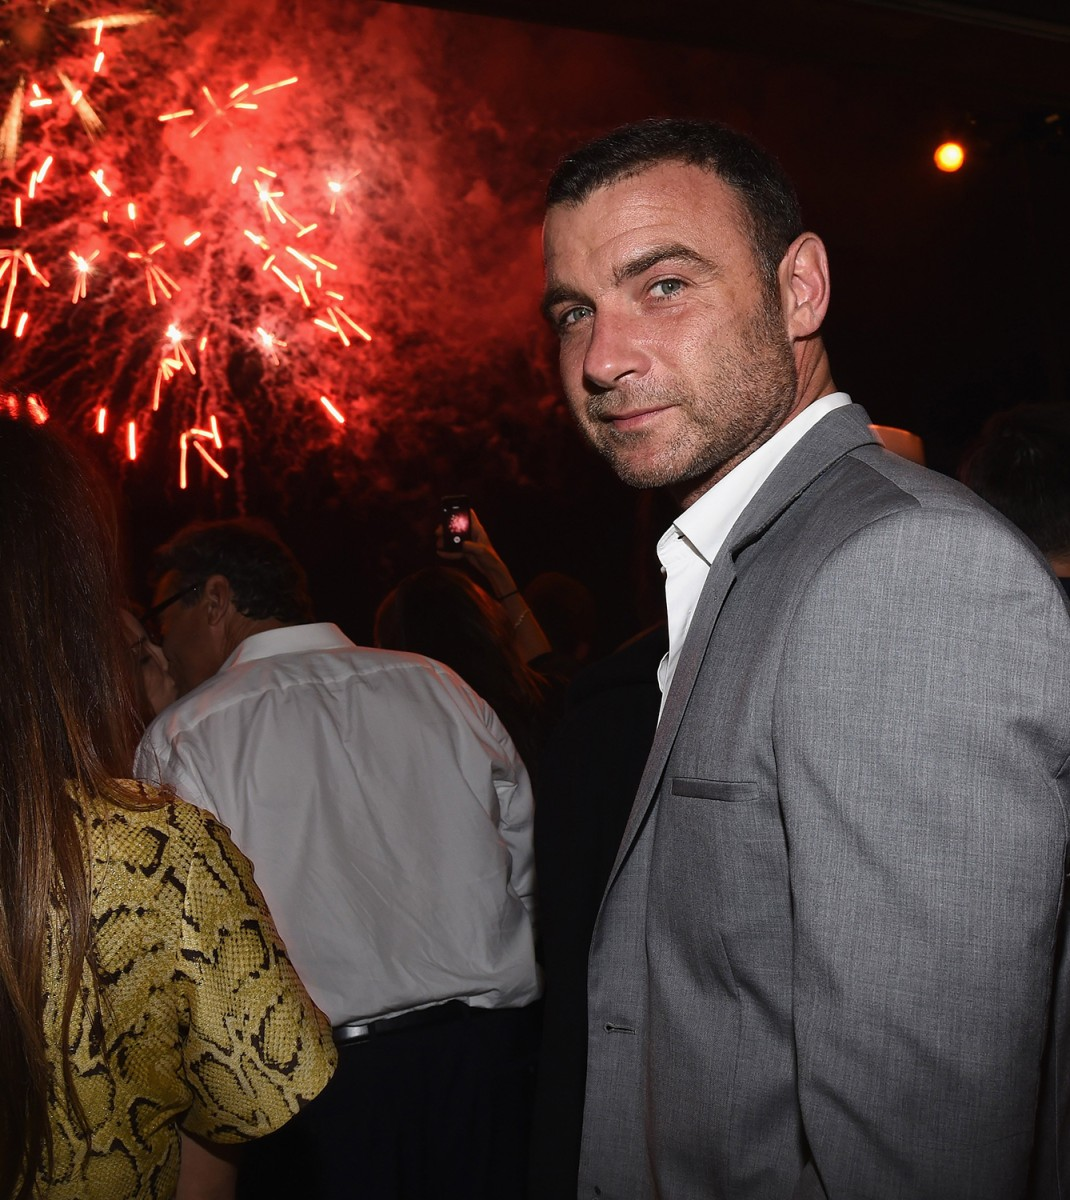 """Image: BESTPIX - Season 2 Premiere Of Showtime's """"Ray Donovan"""" Presented By Time Warner Cable - Inside"""